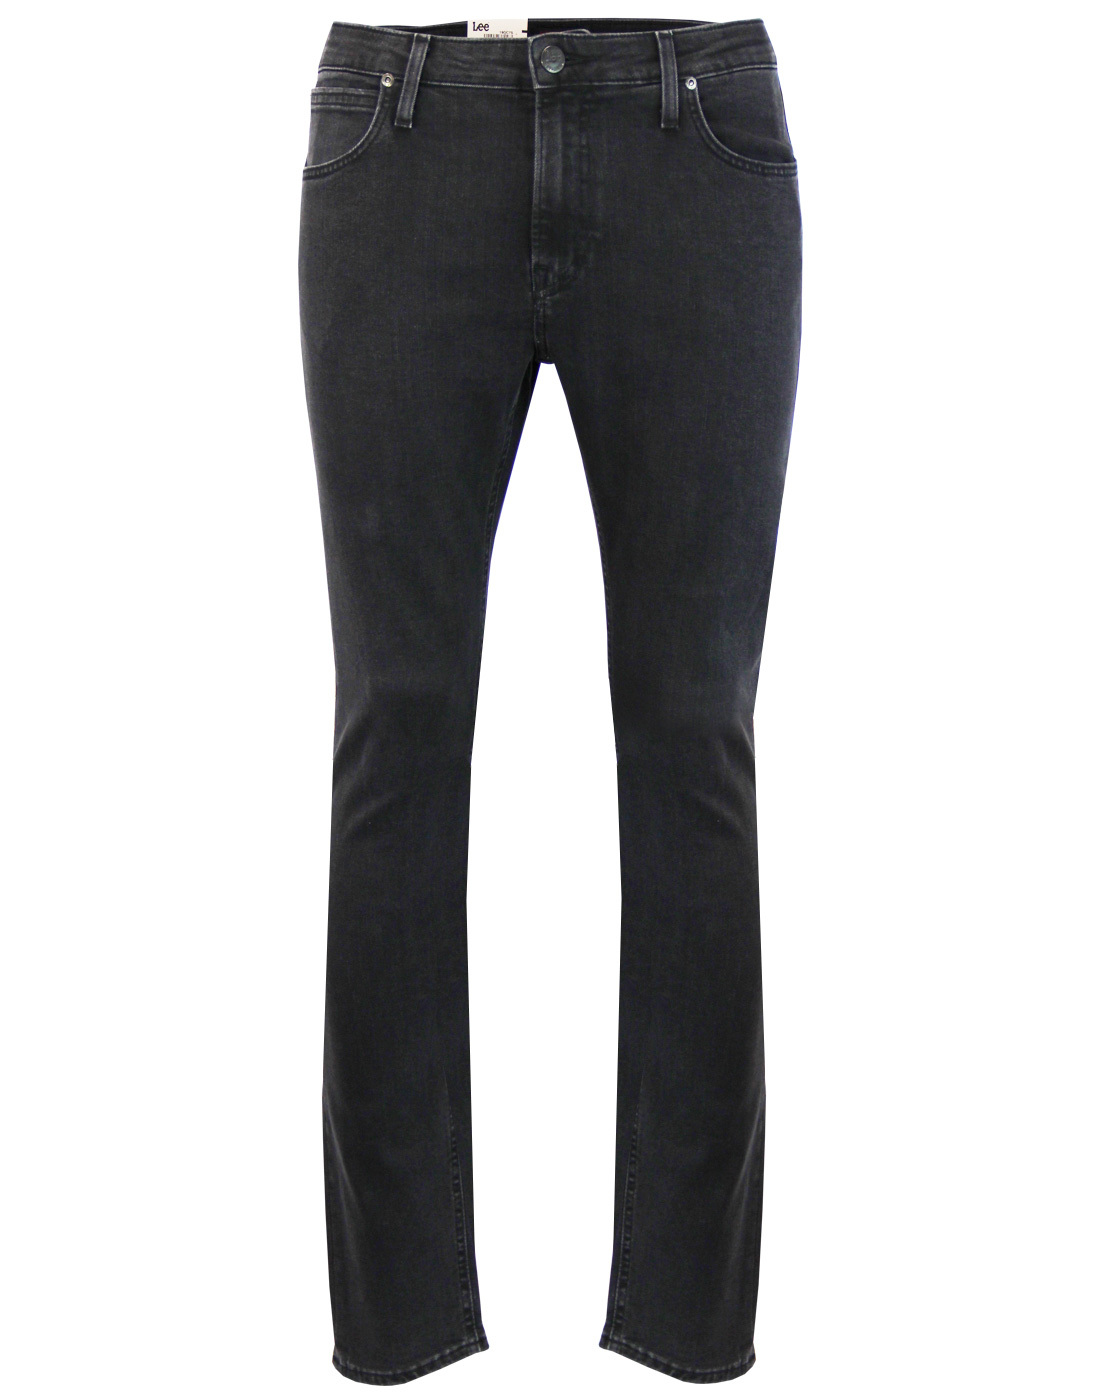 Malone LEE Retro Mod Charcoal Powder Skinny Jeans